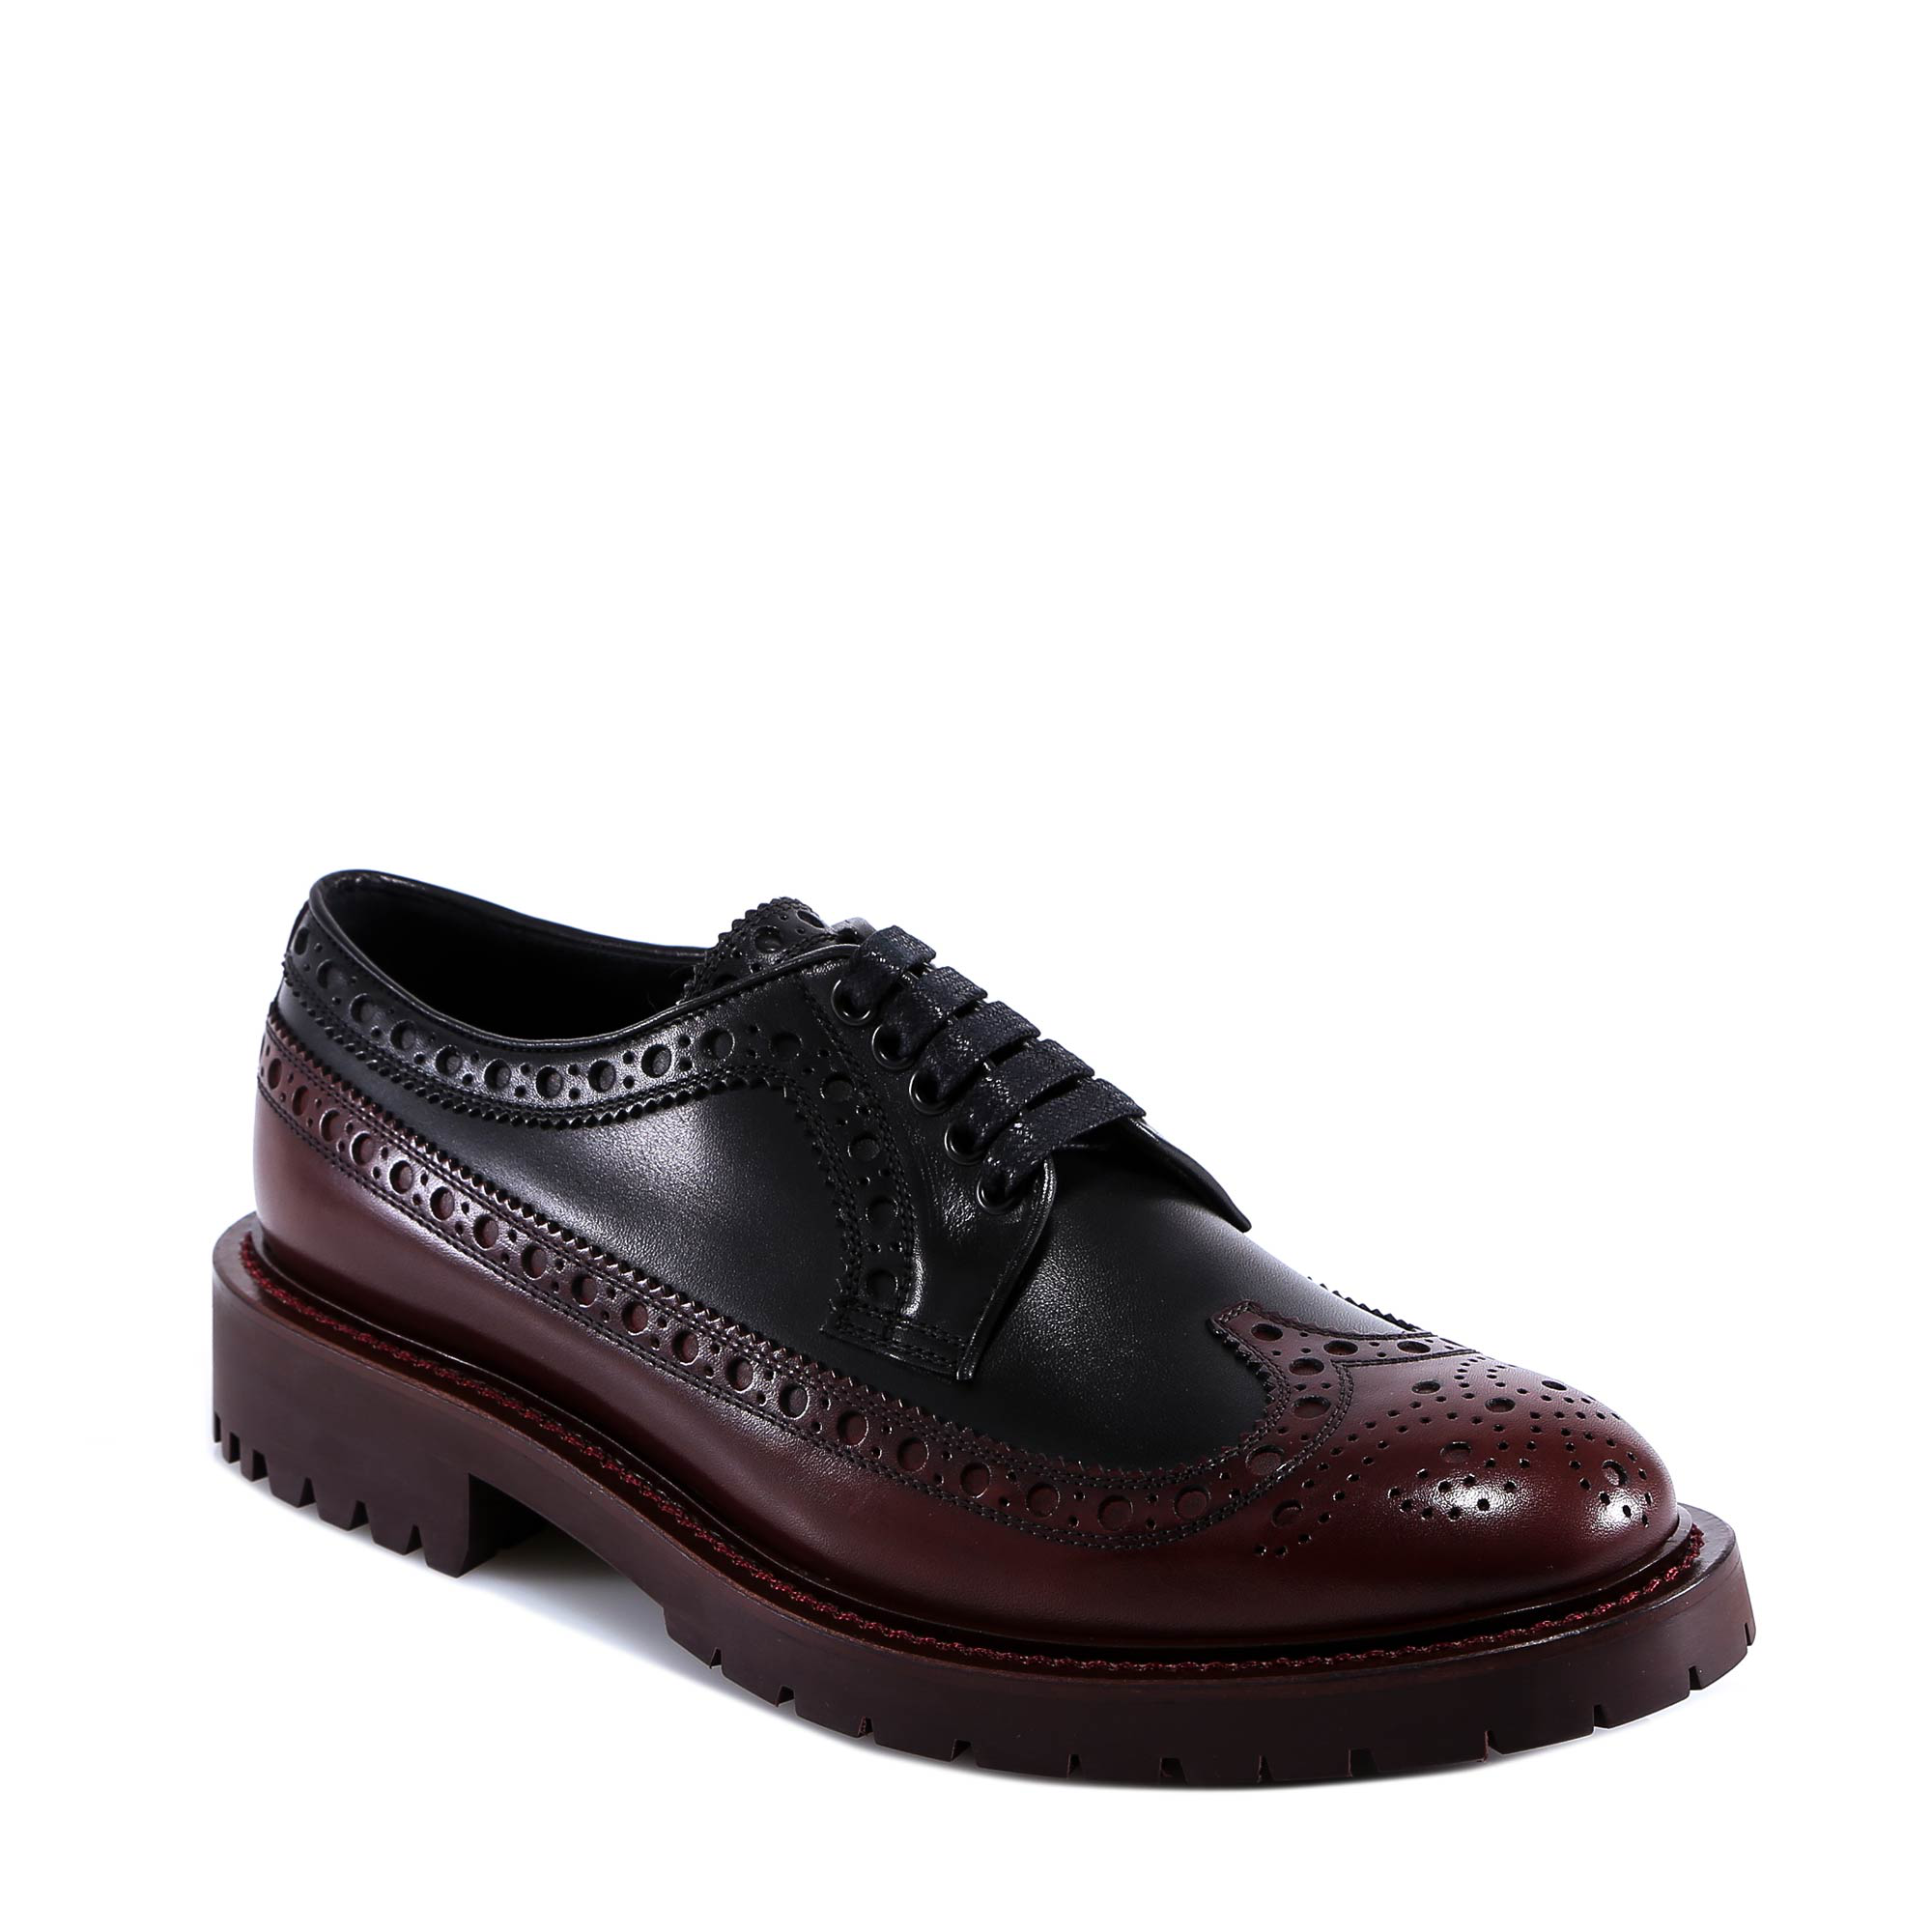 4d9295f696bd Burberry Brogue Detail Leather Derby Shoes In Black